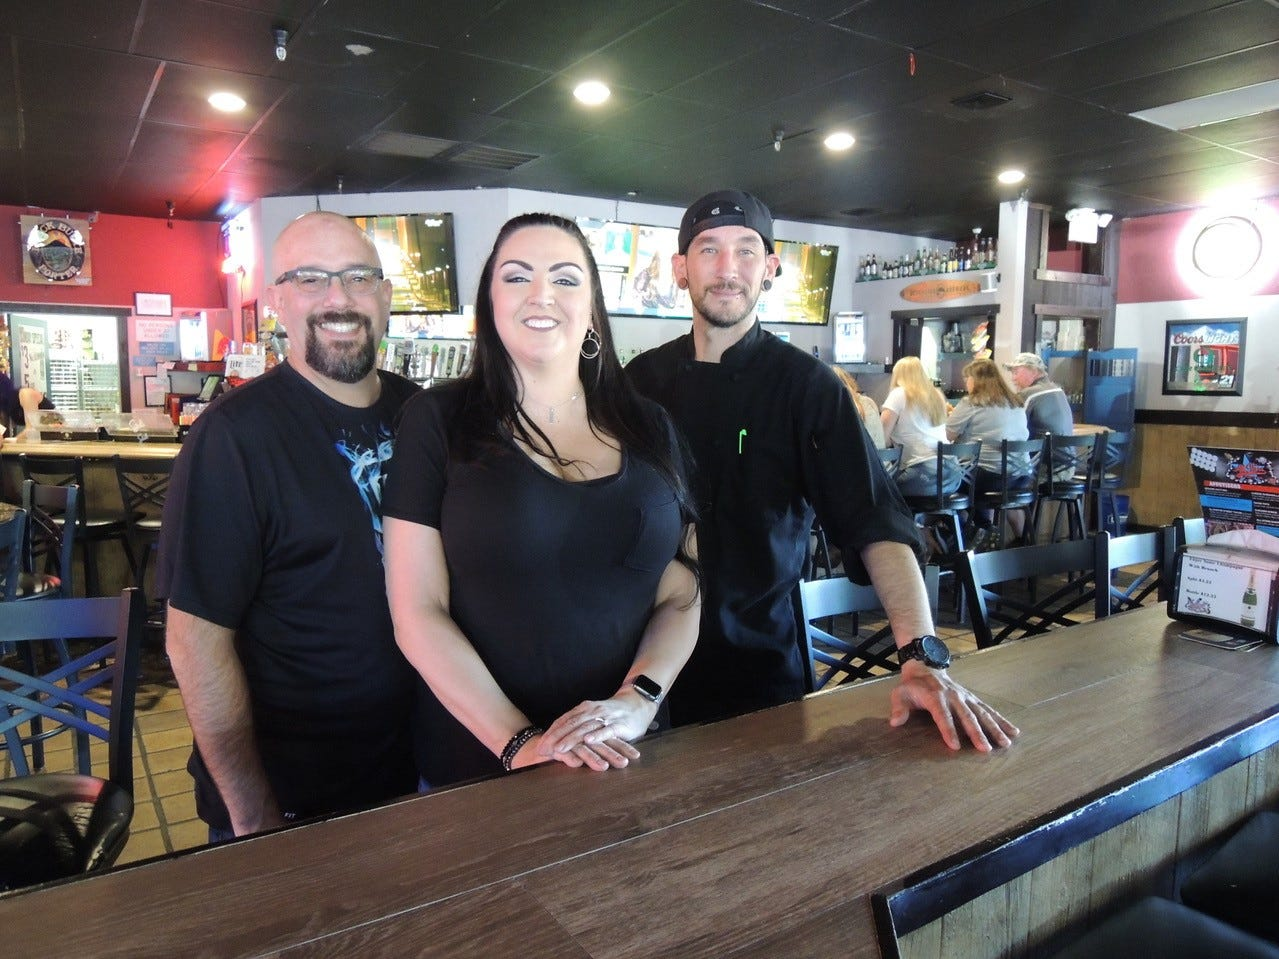 Owners Justin and Semone Bassett, left, and chef Chris Cordova at All Stars Sports Bar on Hartnell Avenue in east Redding.